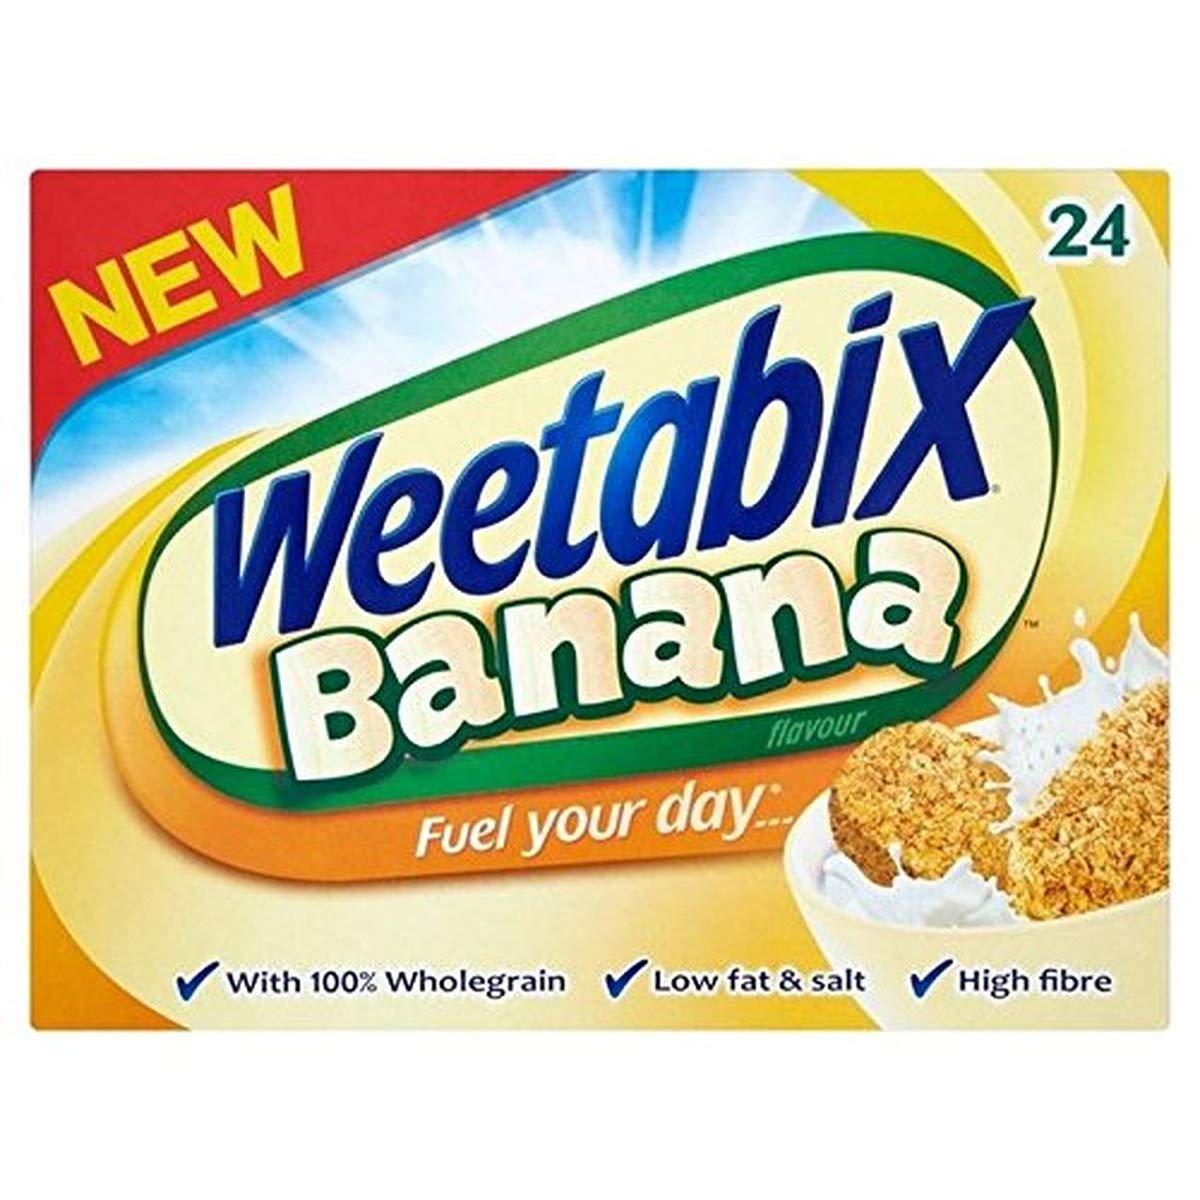 Weetabix Banana Cereal Japan's largest assortment 24 count 15oz 425g Max 69% OFF -